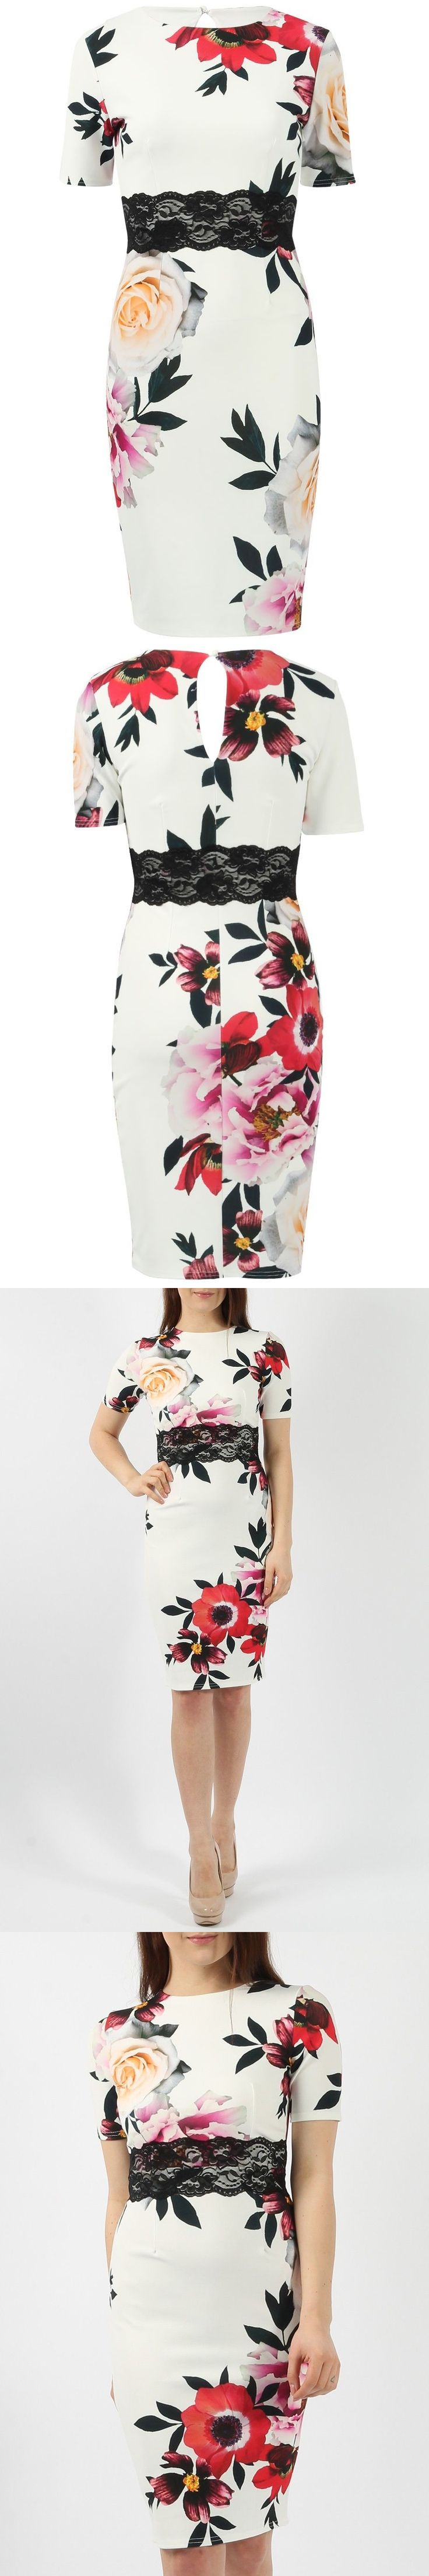 Sexy Women Dresses: Women Summer Sleeve Short Cocktail Evening Party Long Midi Dress Fashion Mini -> BUY IT NOW ONLY: $49.0 on eBay!